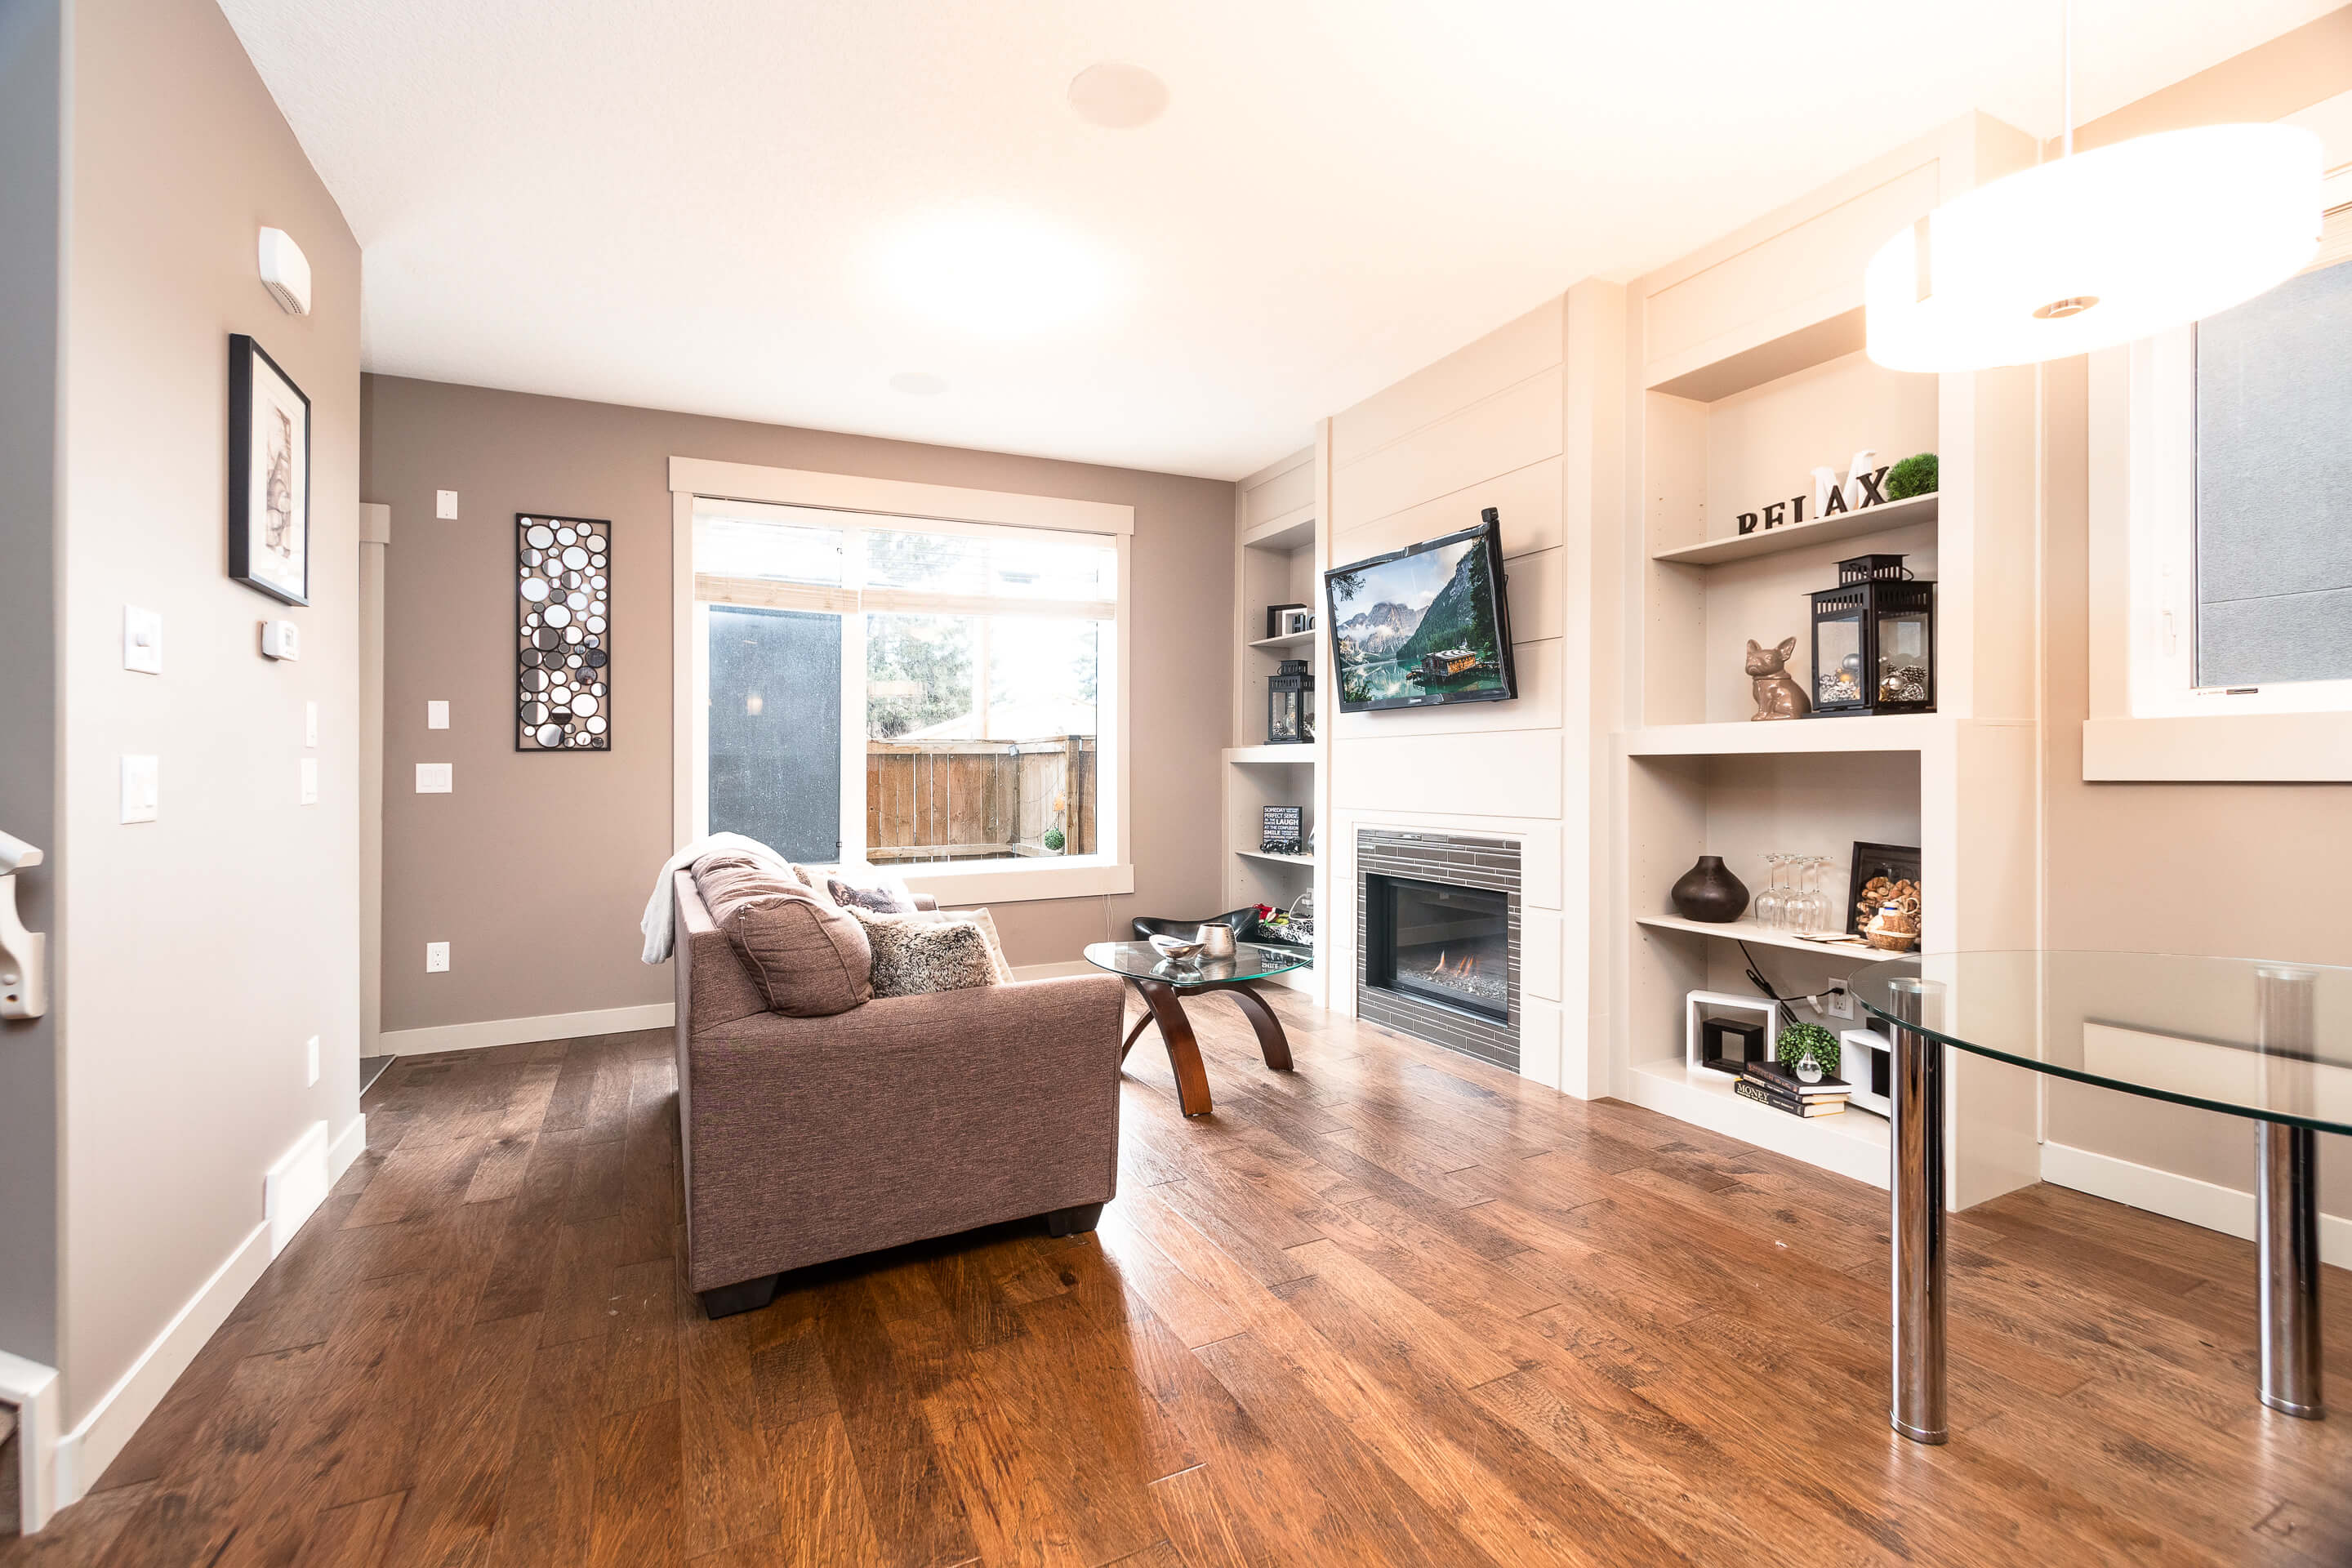 Hello Gorgeous - 2-4726 17 Ave NW - Tara Molina Real Estate (3 of 55)